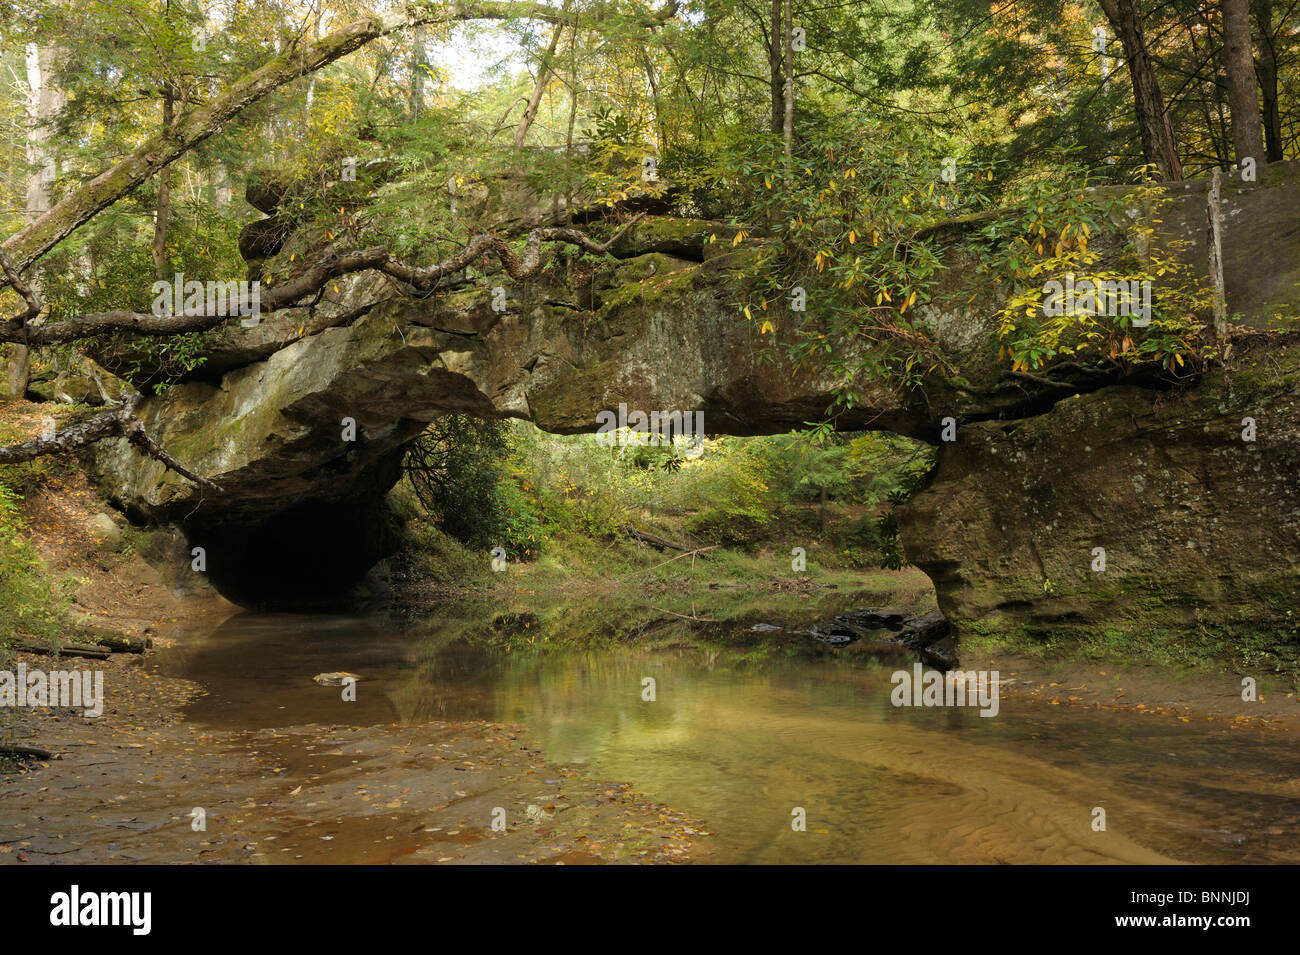 Felsigen Arch Creek Bogen Daniel Boone National Forest den Red River Gorge geologischen Gebiet Kentucky USA Stockbild